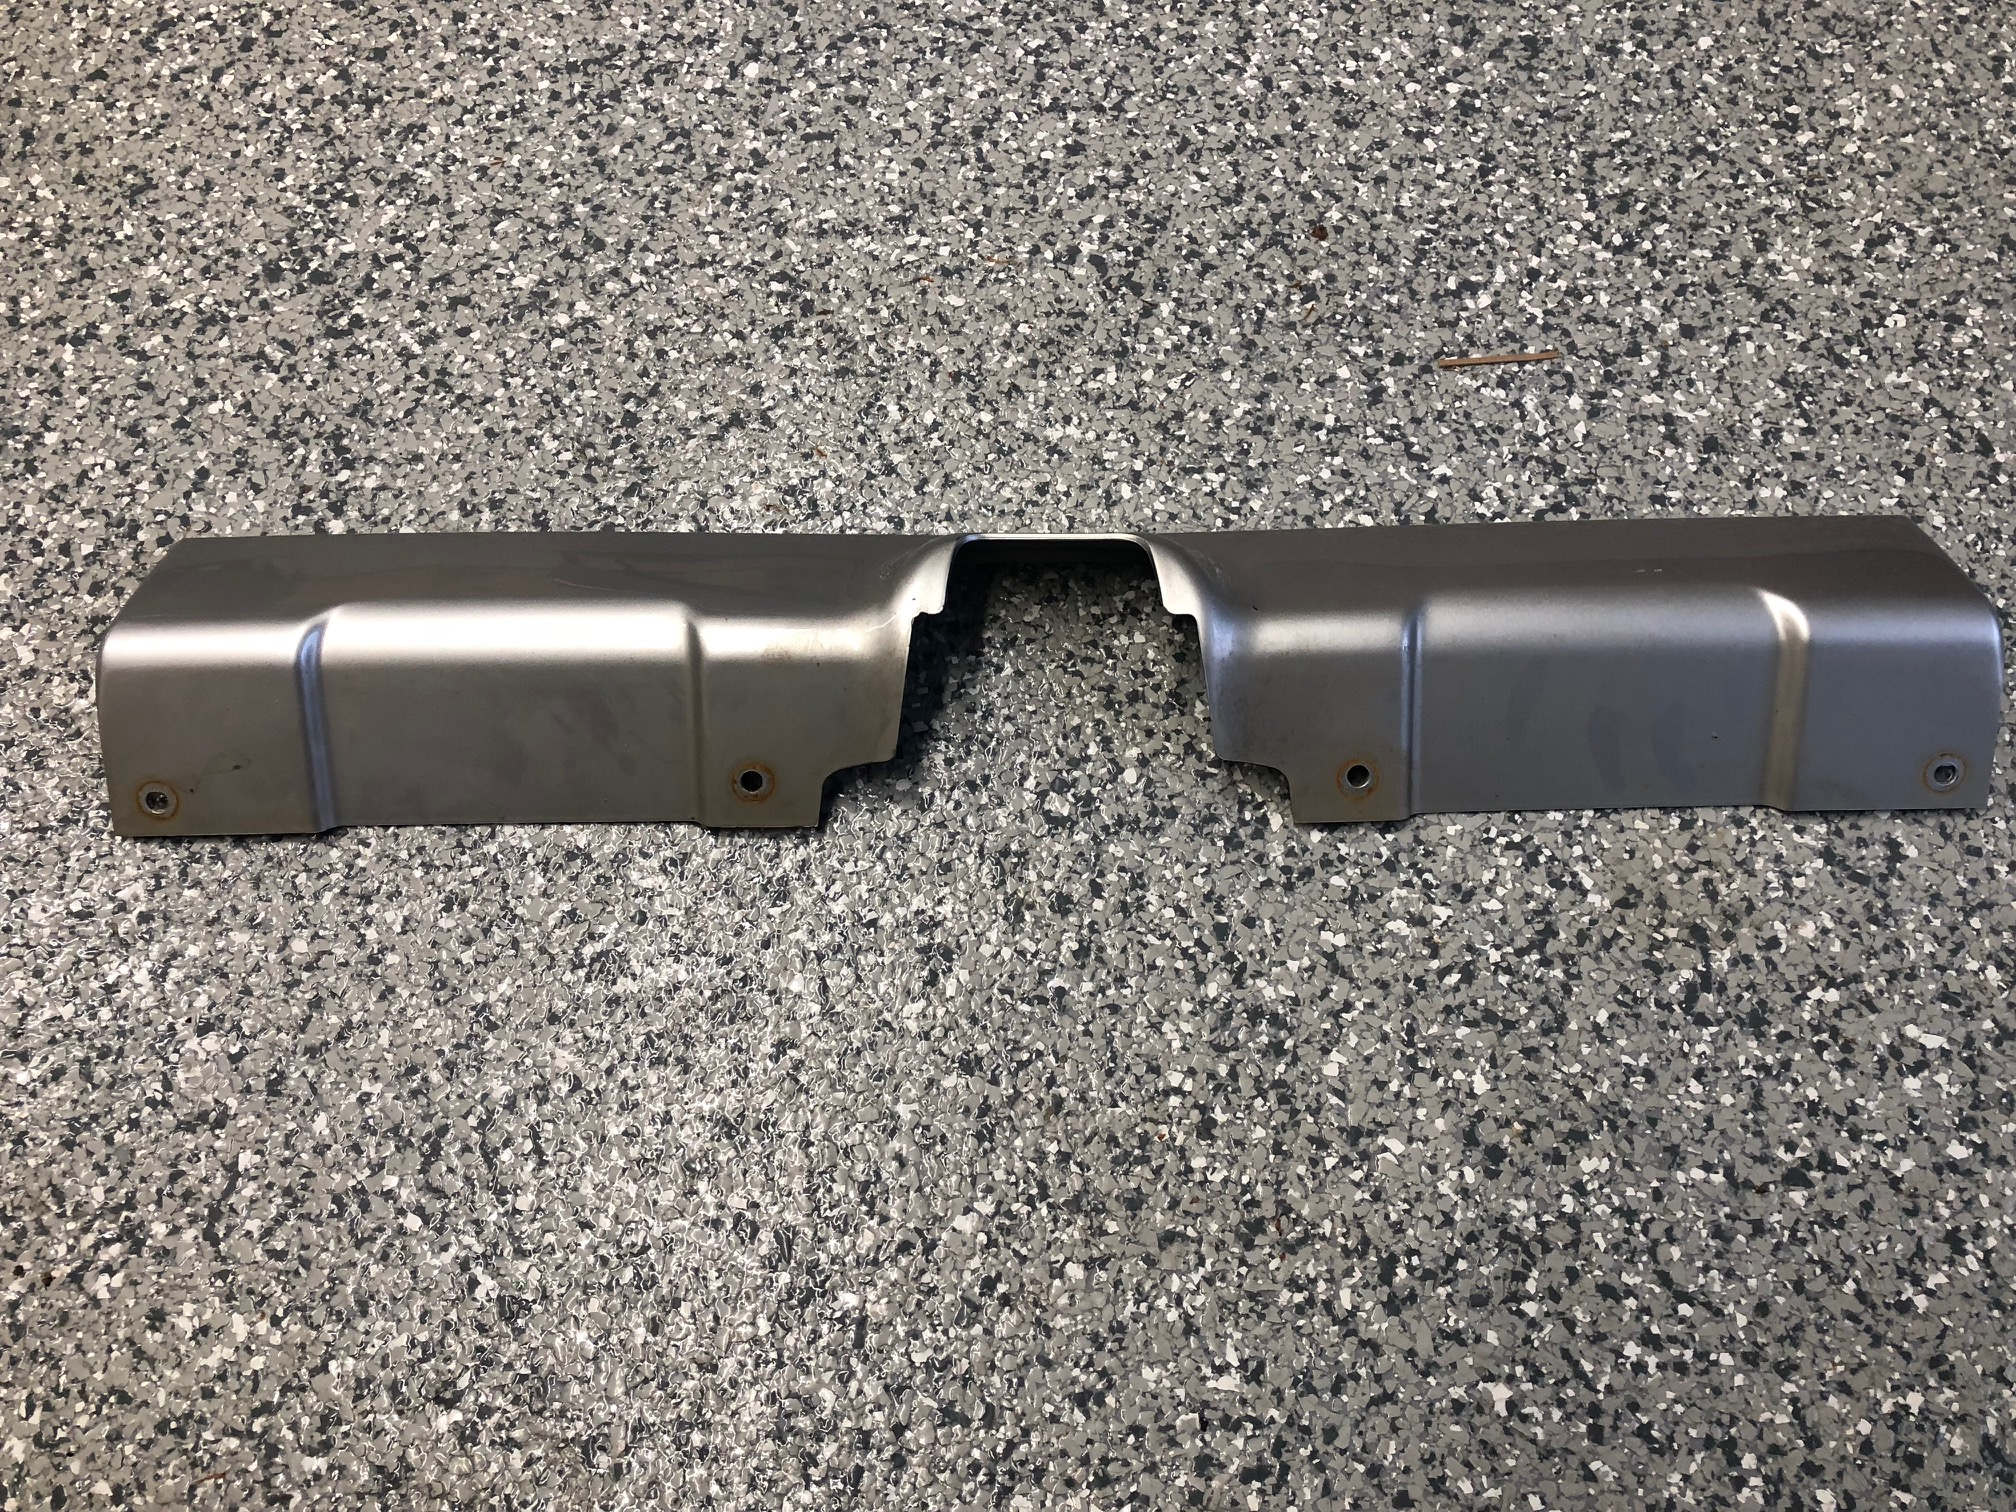 Used Fj Cruiser >> OEM Silver Parts (Door Handles, Front Bumper Caps, Rear Bumper Cap (RH), Hitch Trim) - Toyota FJ ...